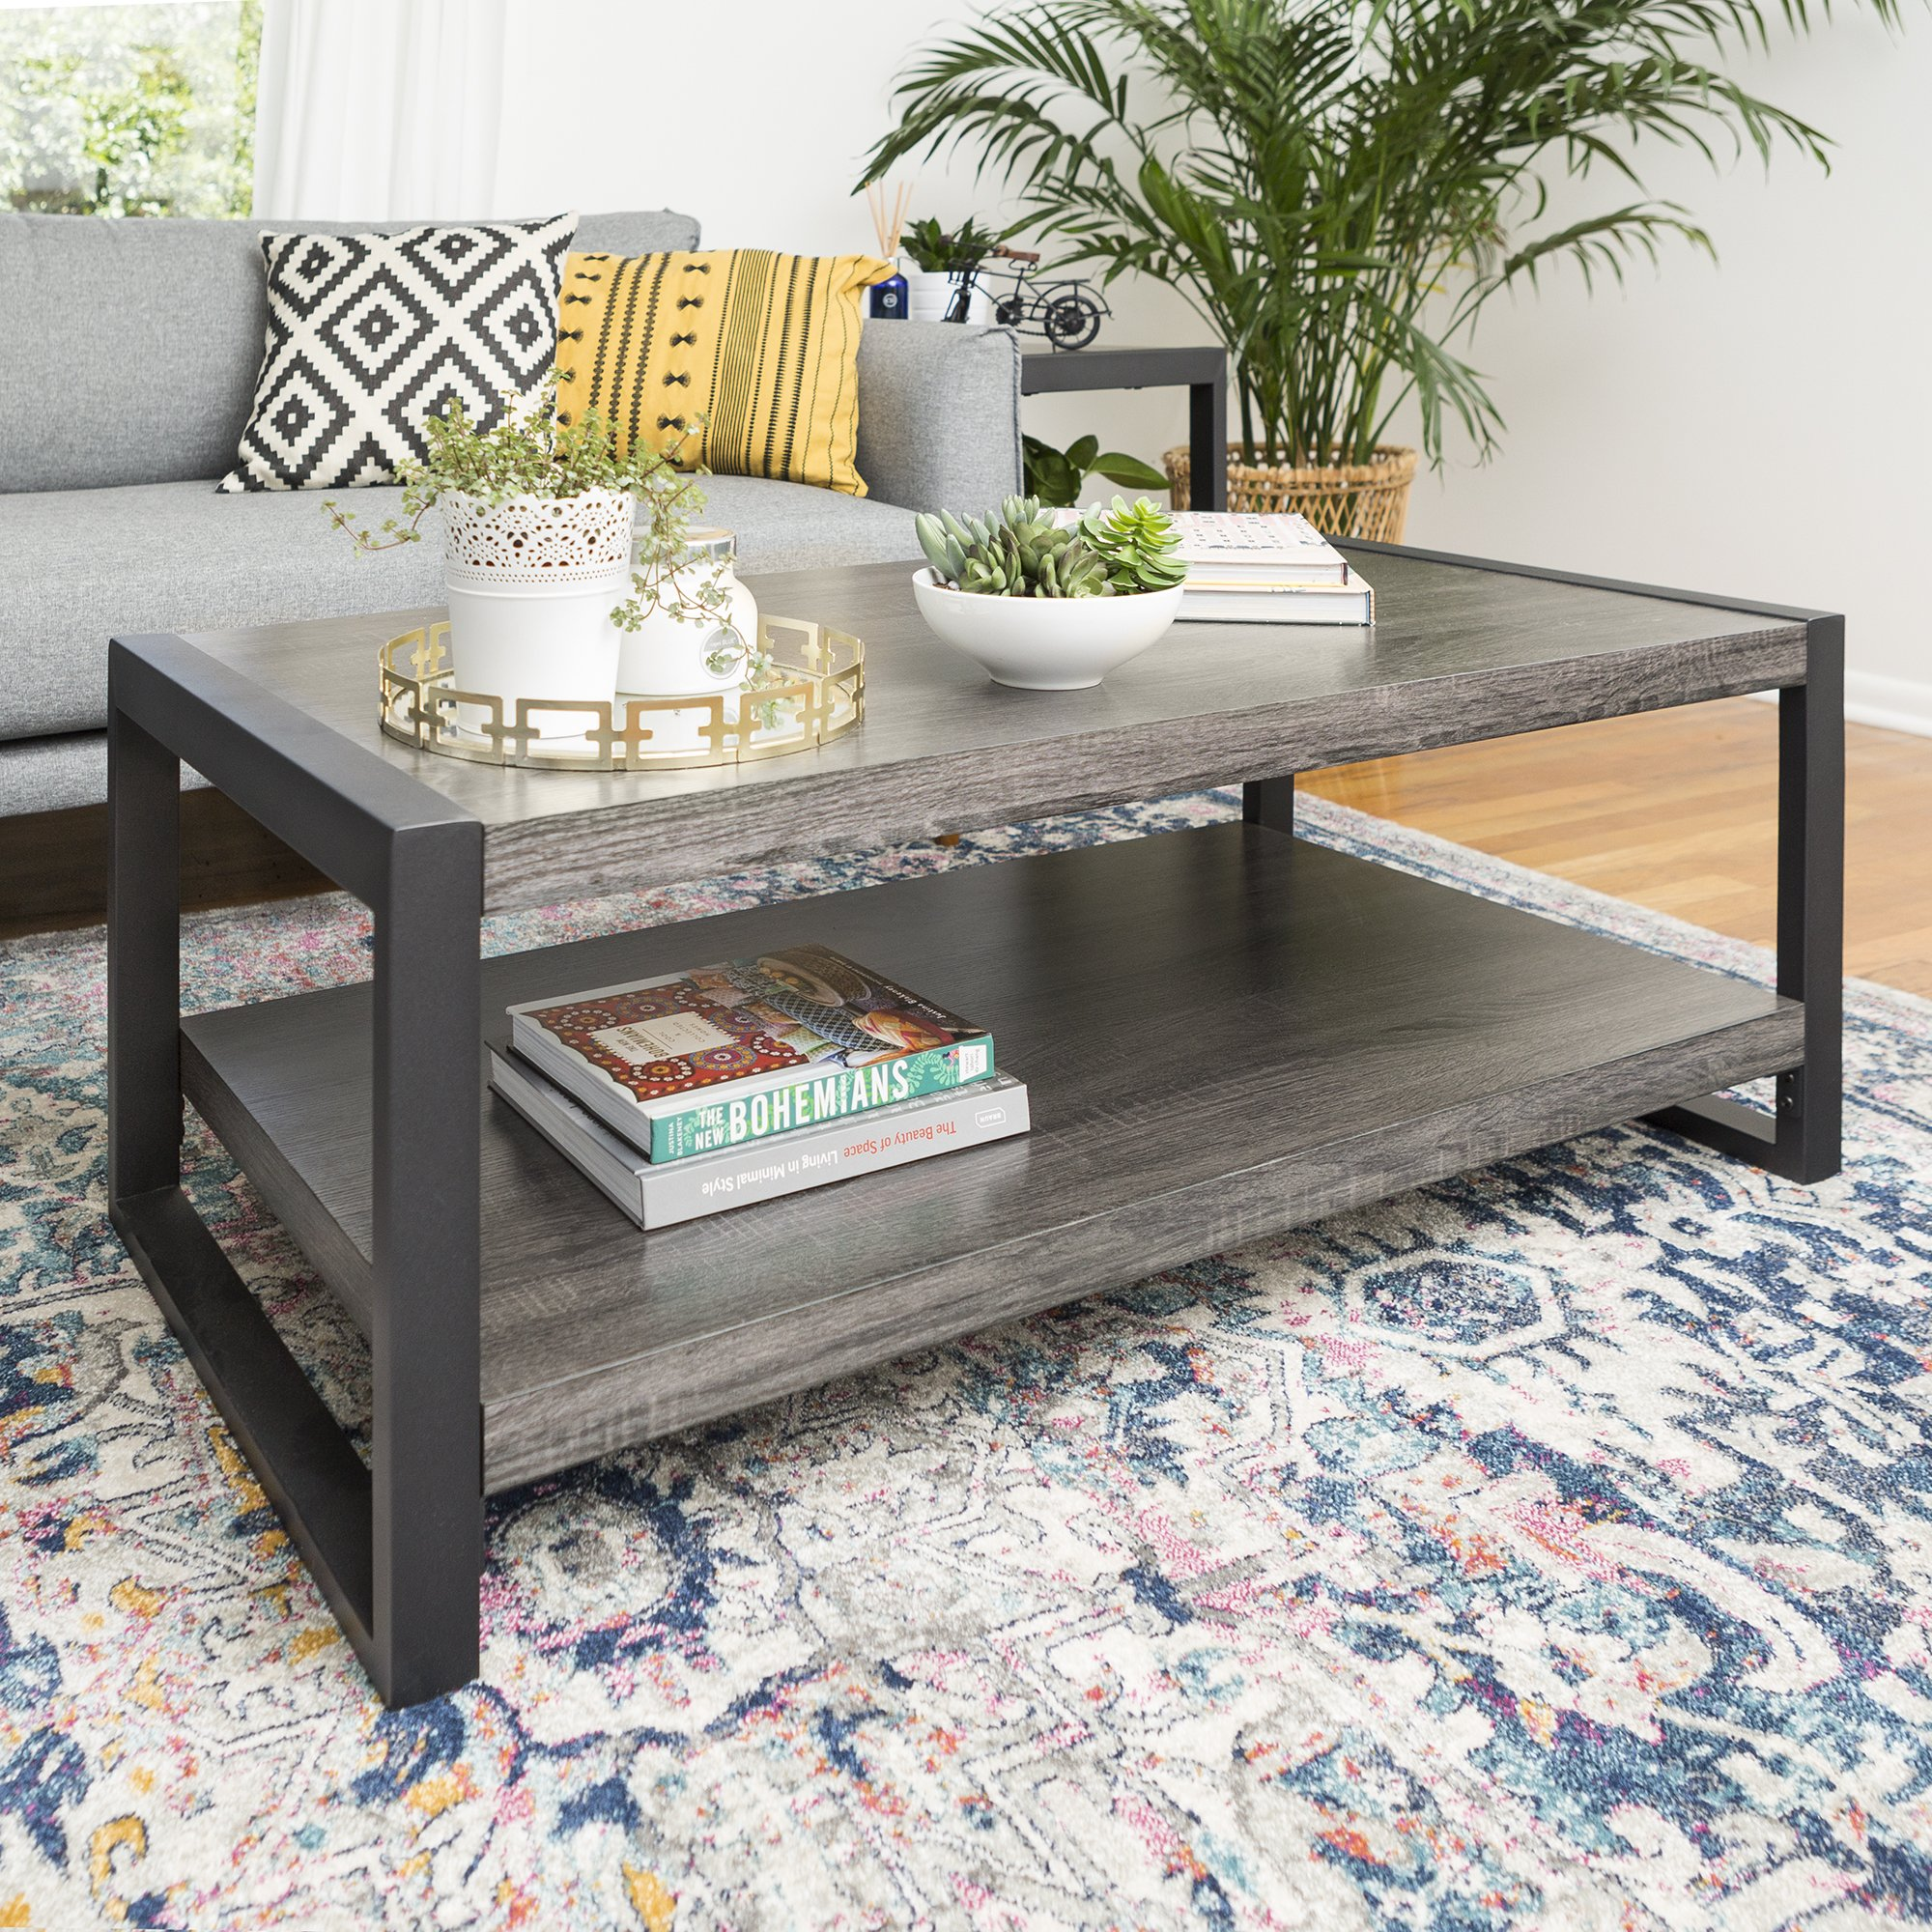 Walker Edison Furniture Company Industrial Modern Rectangle Metal Base and Wood Coffee Table Living Room Accent Ottoman, 48 Inch, Charcoal Grey